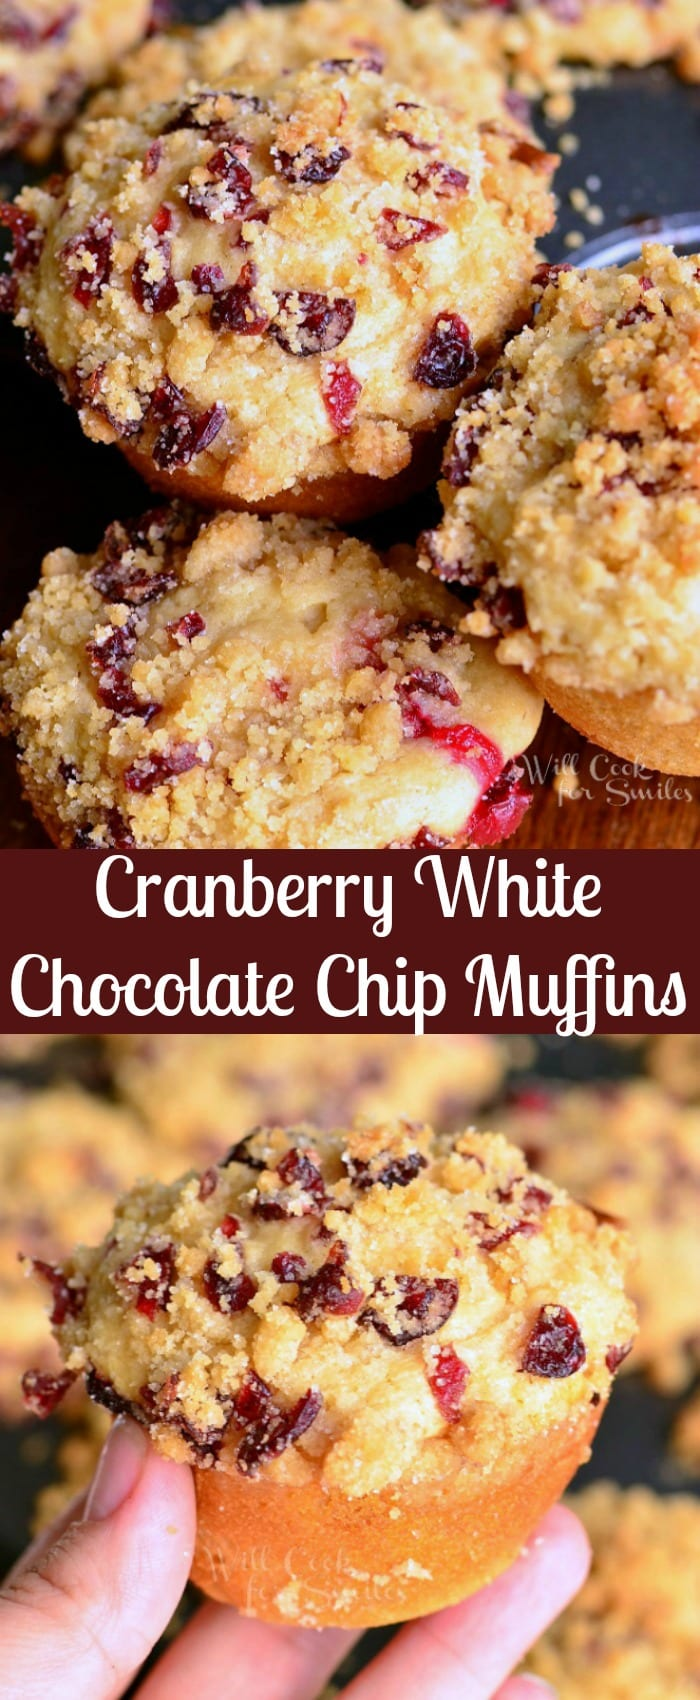 Cranberry White Chocolate Chip Streusel Muffins. Scrumptious, soft muffins made with fresh cranberries and white chocolate chips. These tasty muffins are also topped with sweet cranberry streusel. #muffins #cranberry #whitechocolate #breakfast #snack